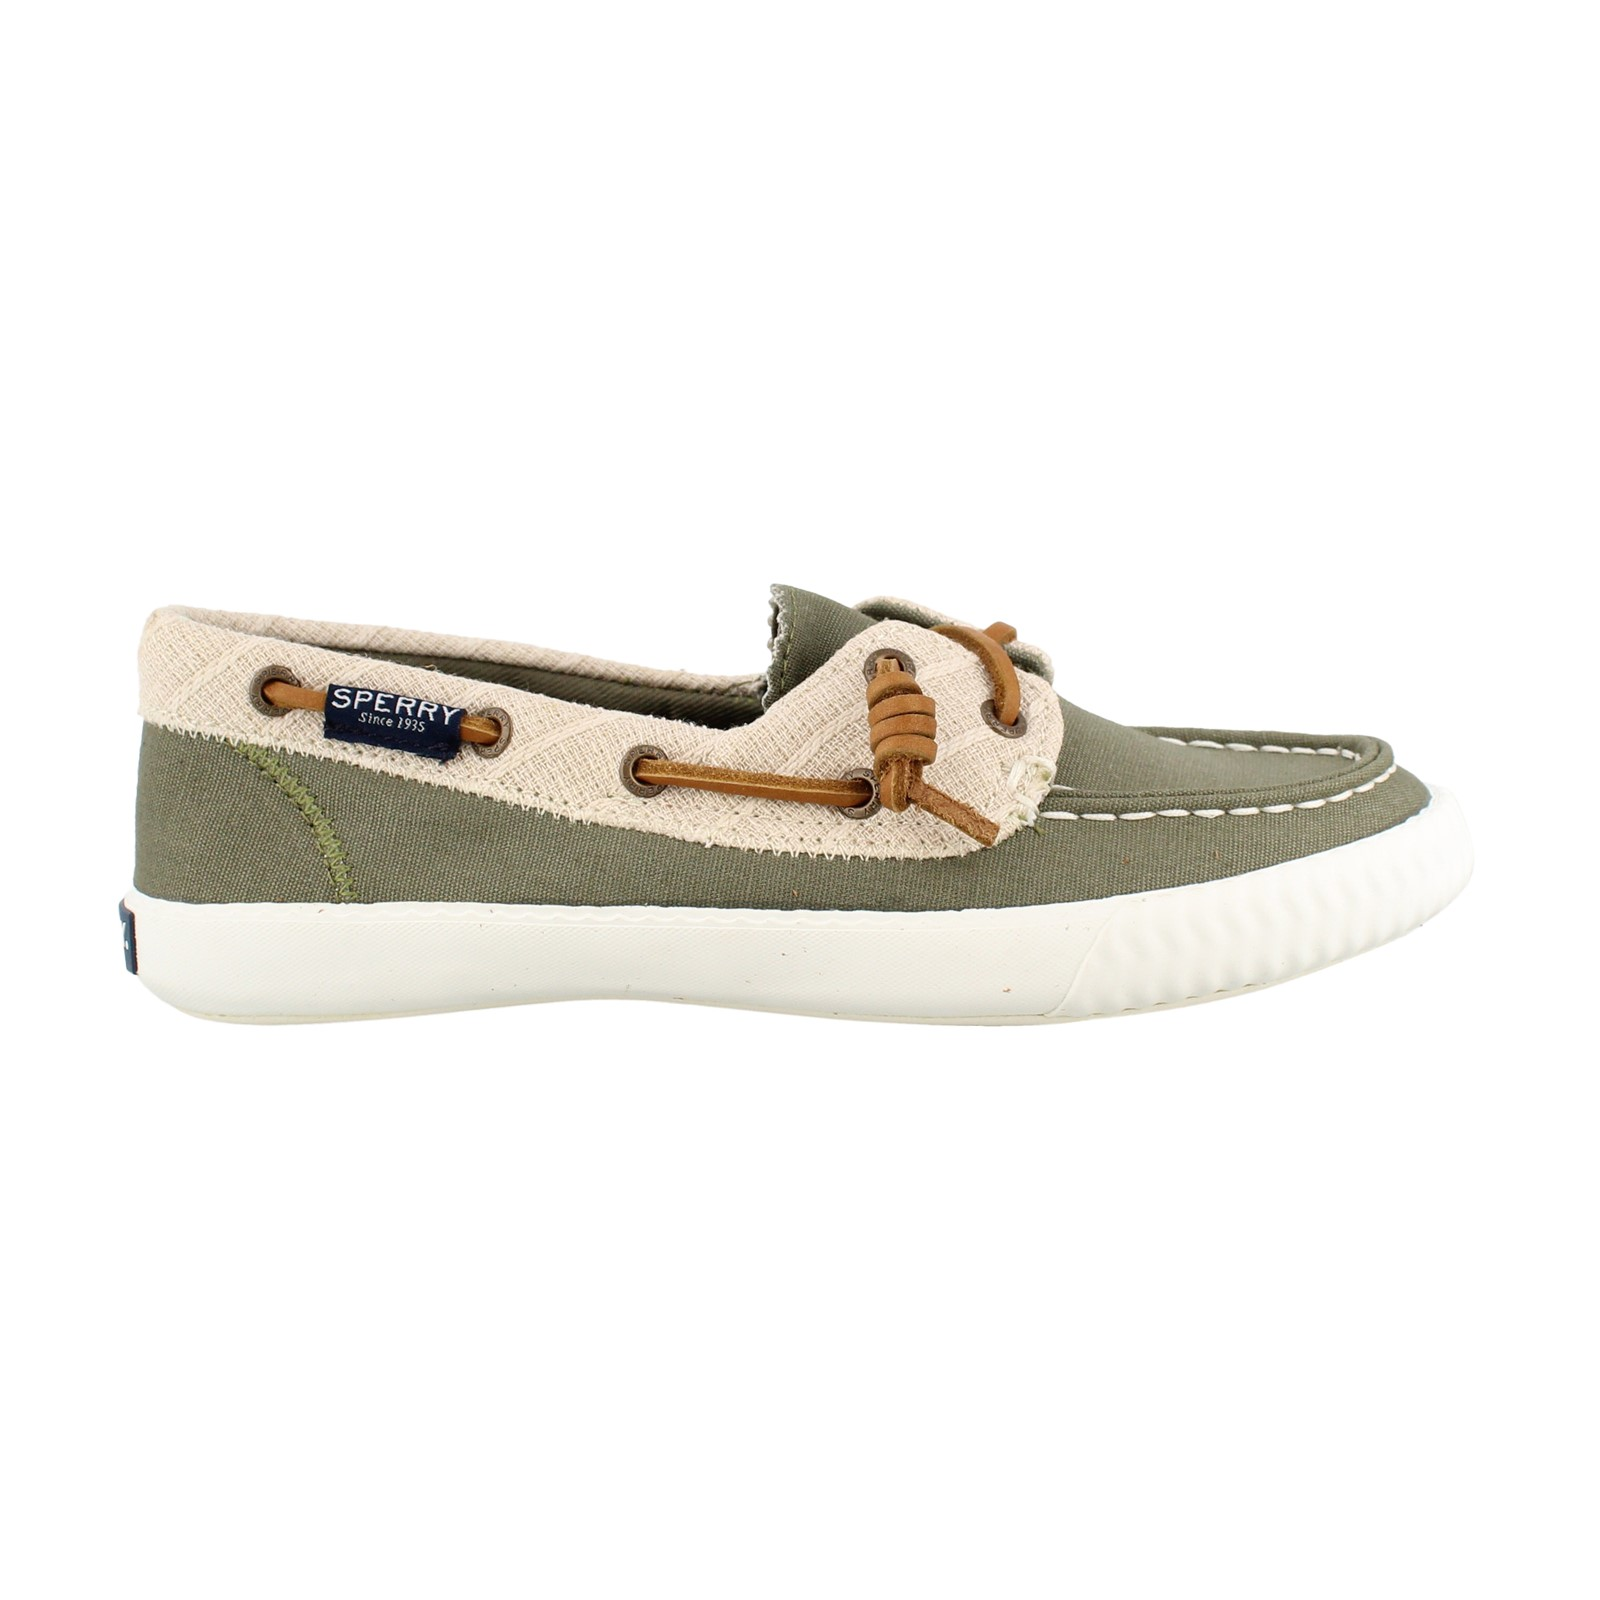 cheap for discount price reduced best authentic Women's Paul Sperry, Sayel Away Boat Shoes | Peltz Shoes